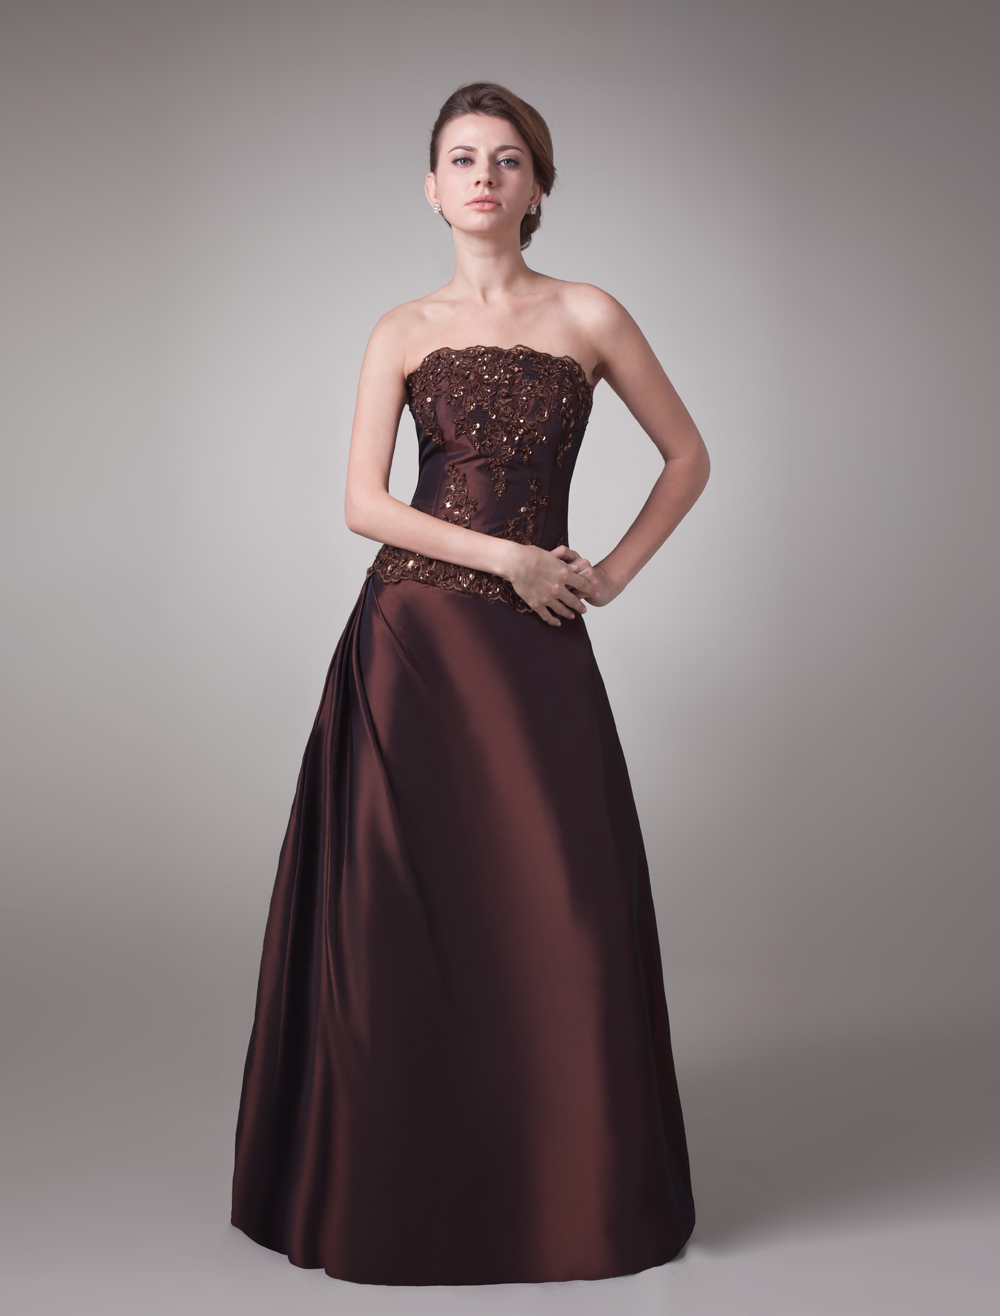 Glamour Chocolate A-line Strapless Sequin Backless Mother of the Bride Dress